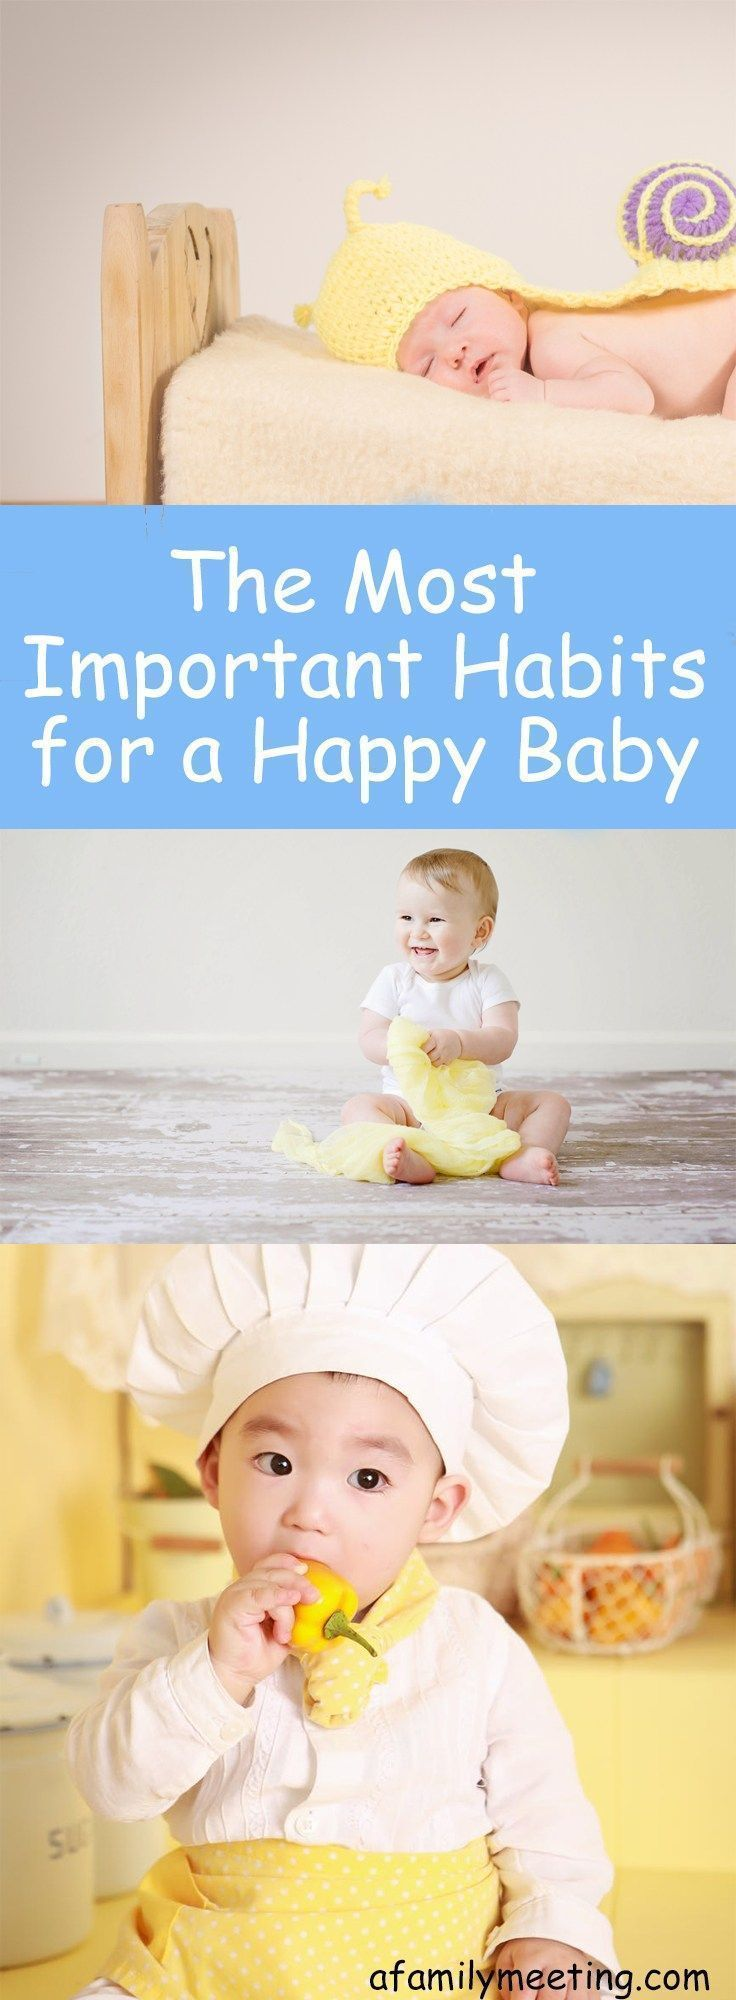 All moms want a happy baby. A happy baby brings joy and love and fun into a home. A fussy baby can be difficult for everyone in the house. Moms of happy babies know the two most important habits to create for a happy baby. Find out what two habits every parent of a baby needs to be working on. #sleep training #healthybaby